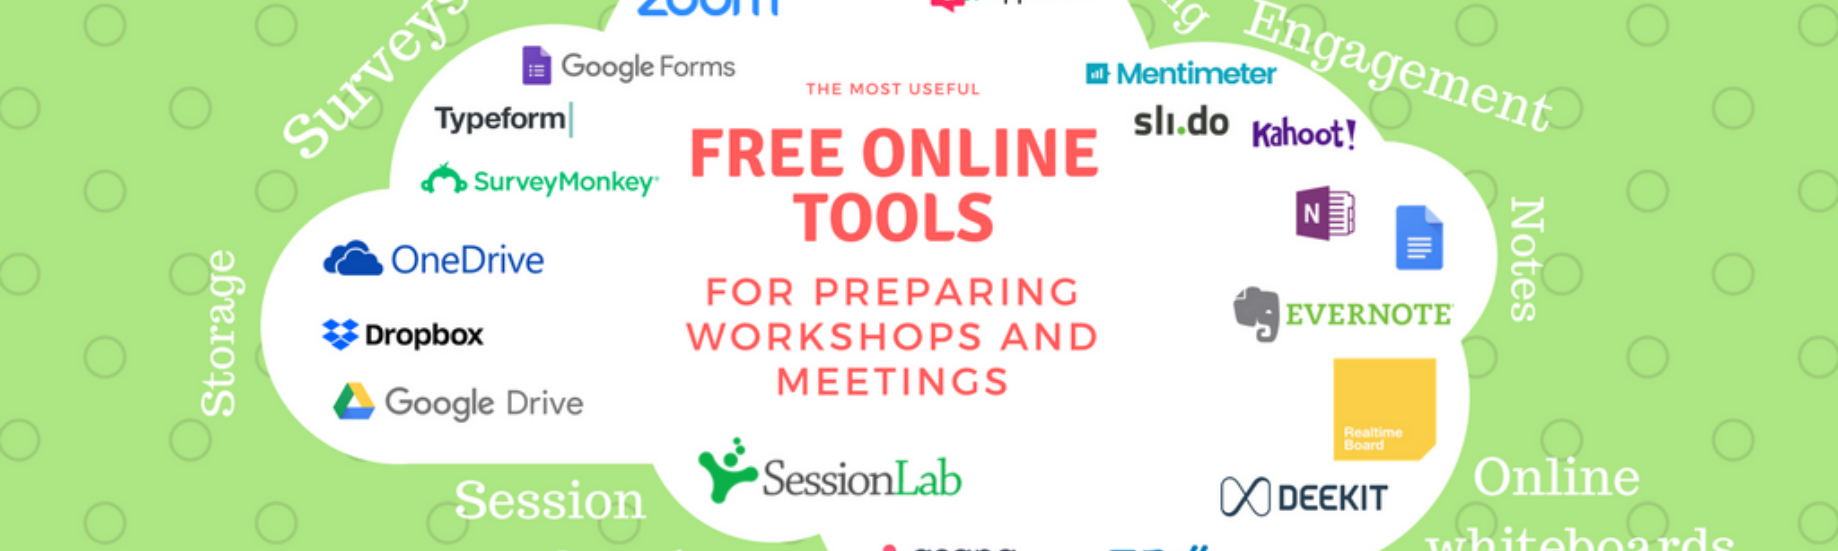 25 useful free online tools for workshops and meetings